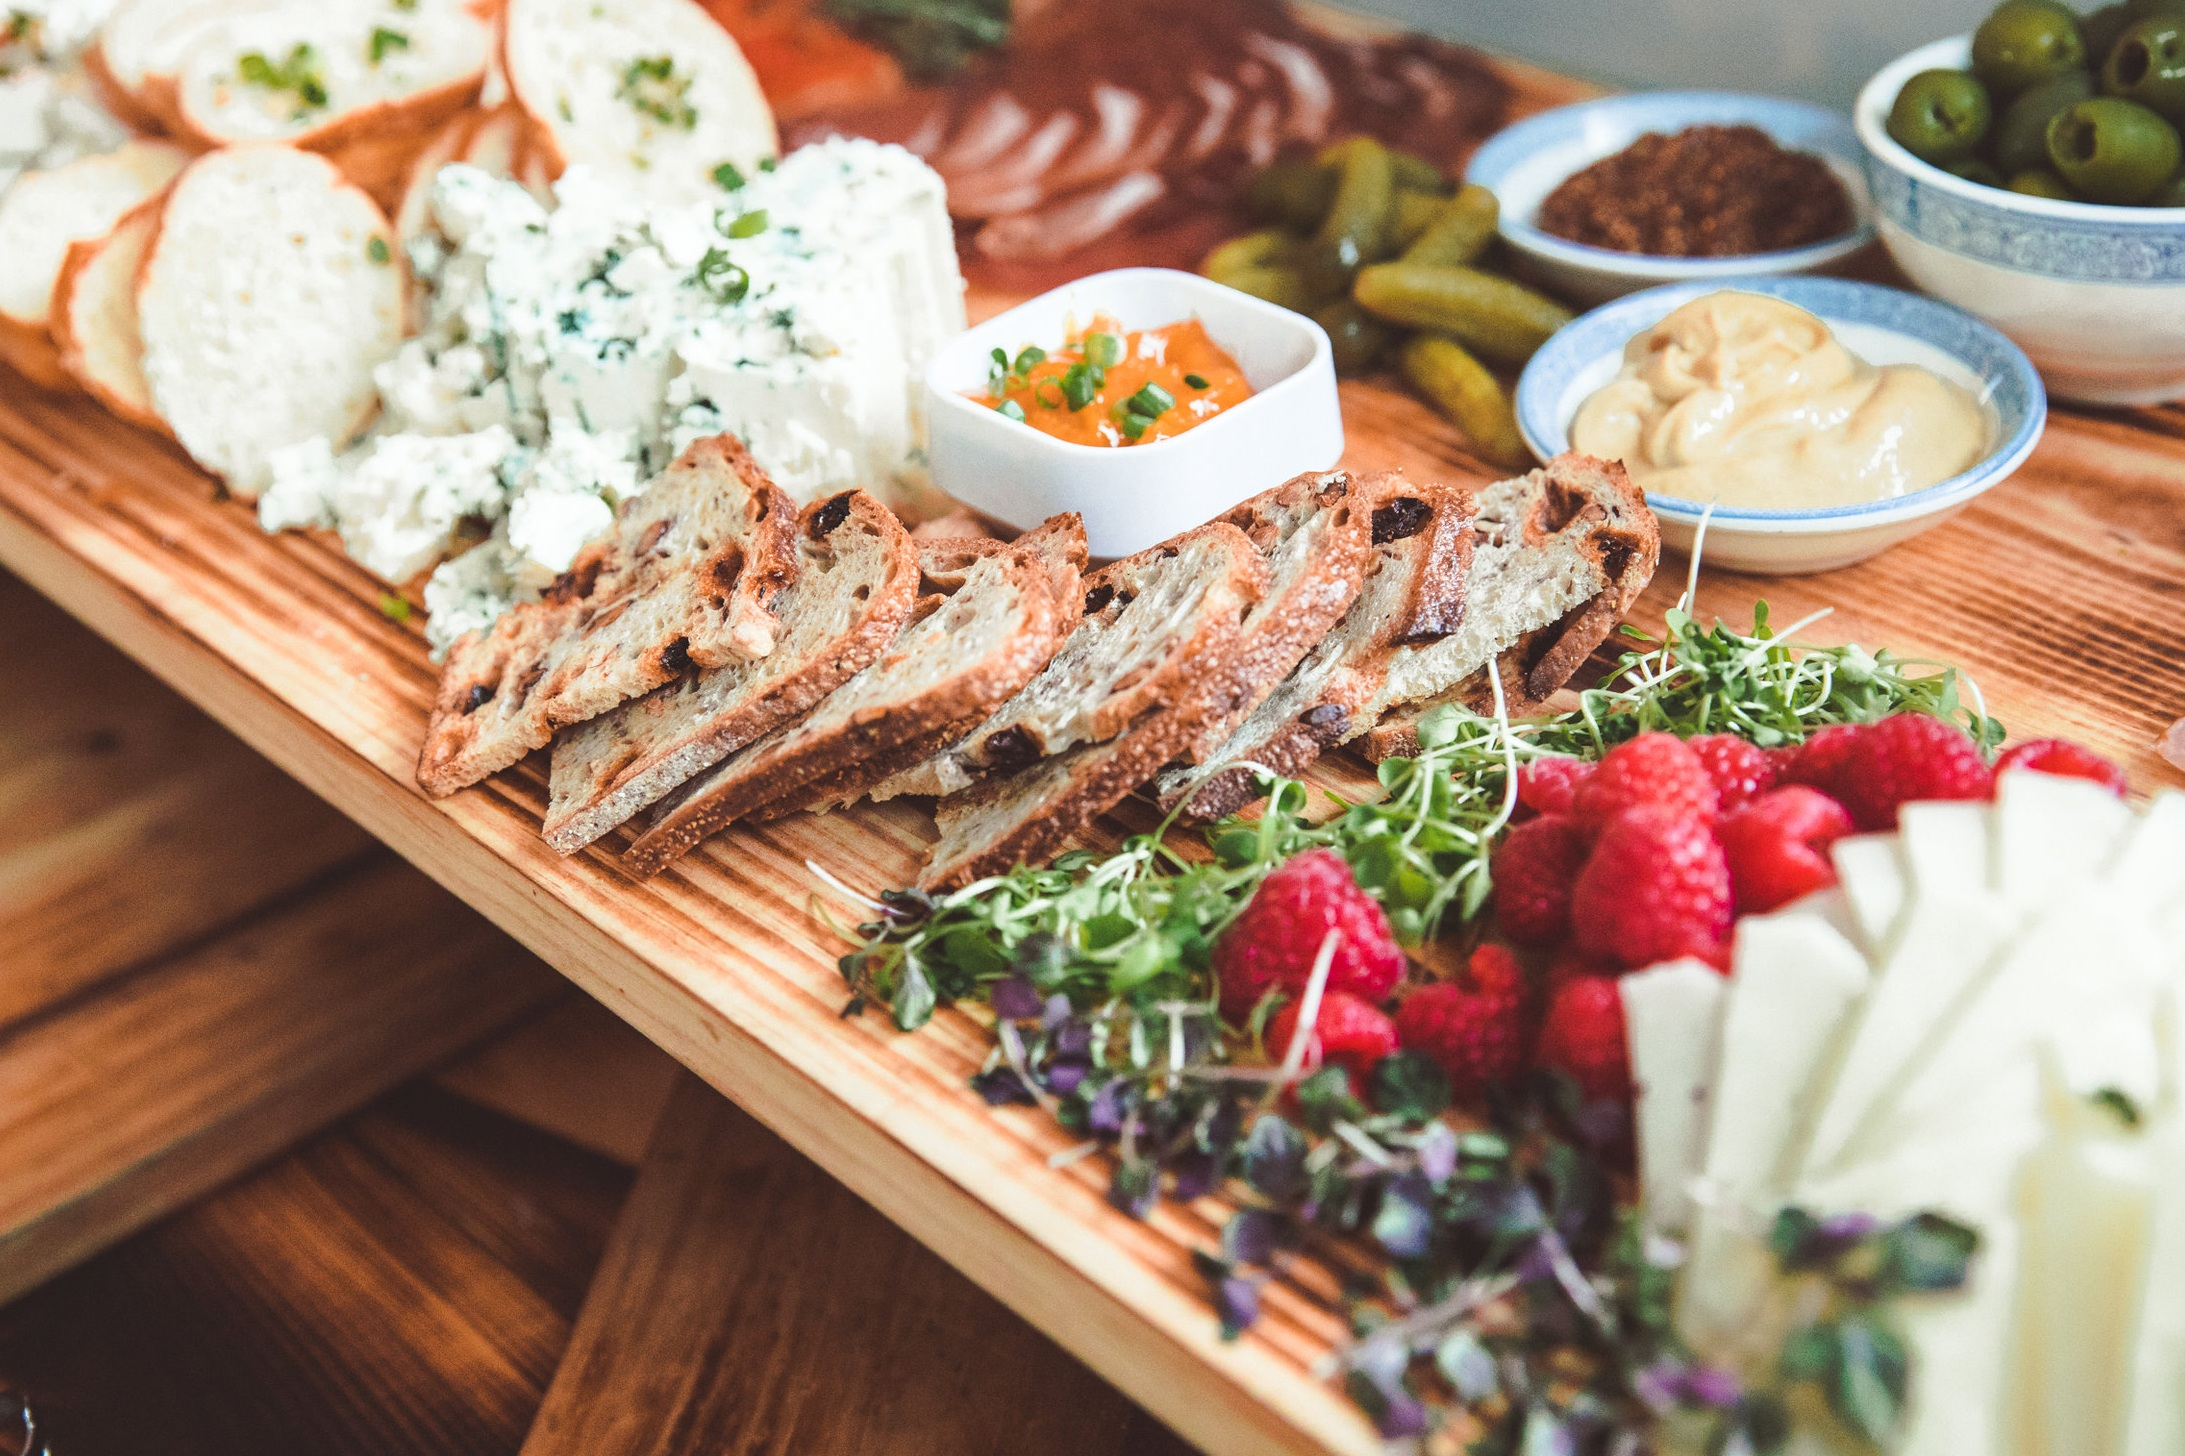 Catering Platter with cheese, fruit and bread